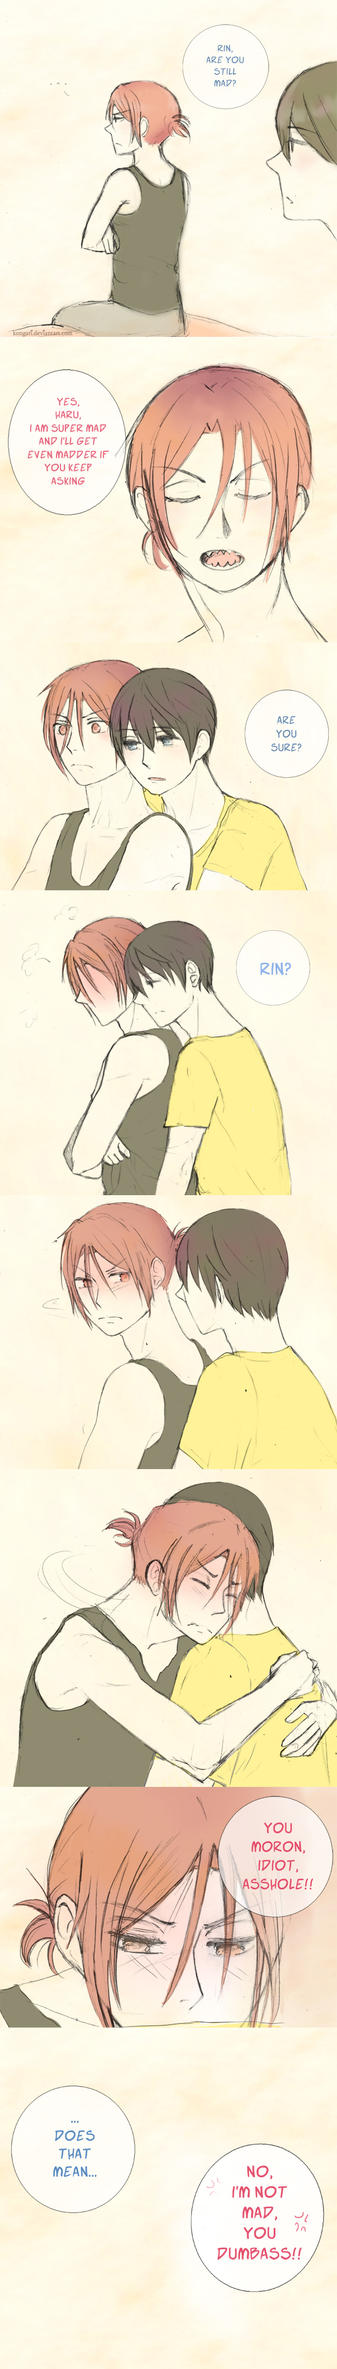 RinxHaru - Are you mad? by Pleionne